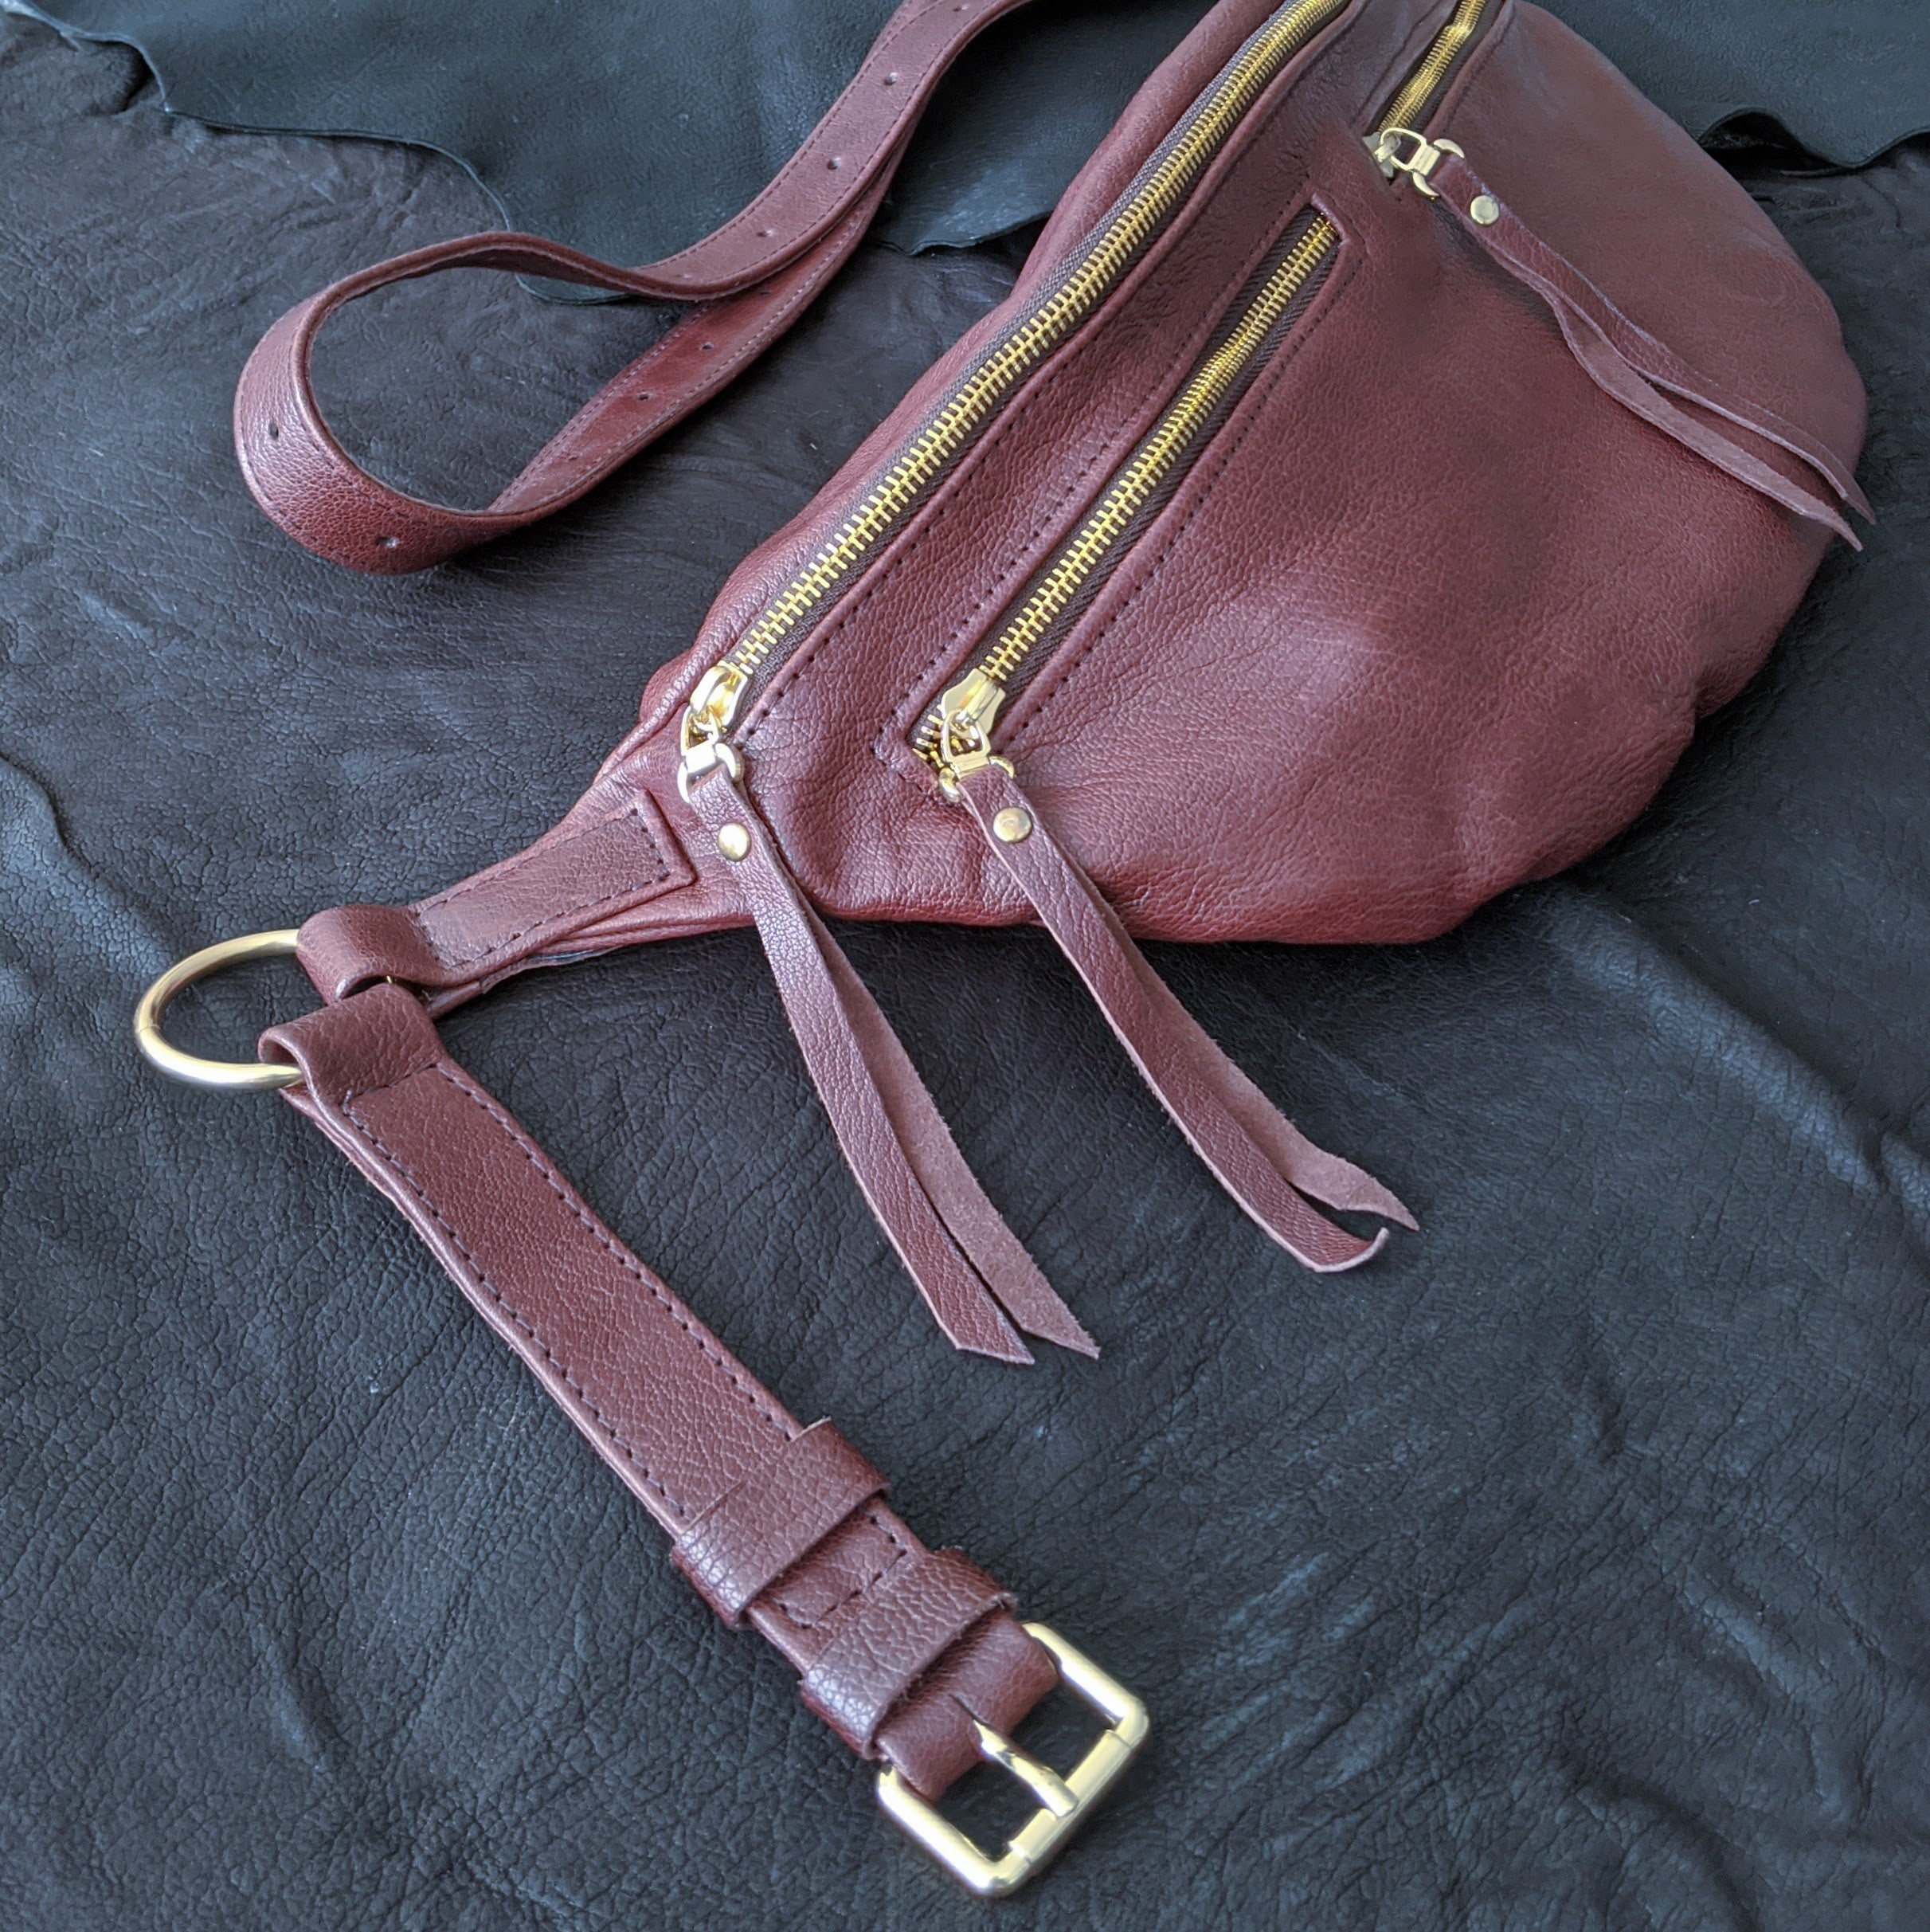 The Everywhere Bag — Grainy Raspberry Blush Leather with Gold Hardware